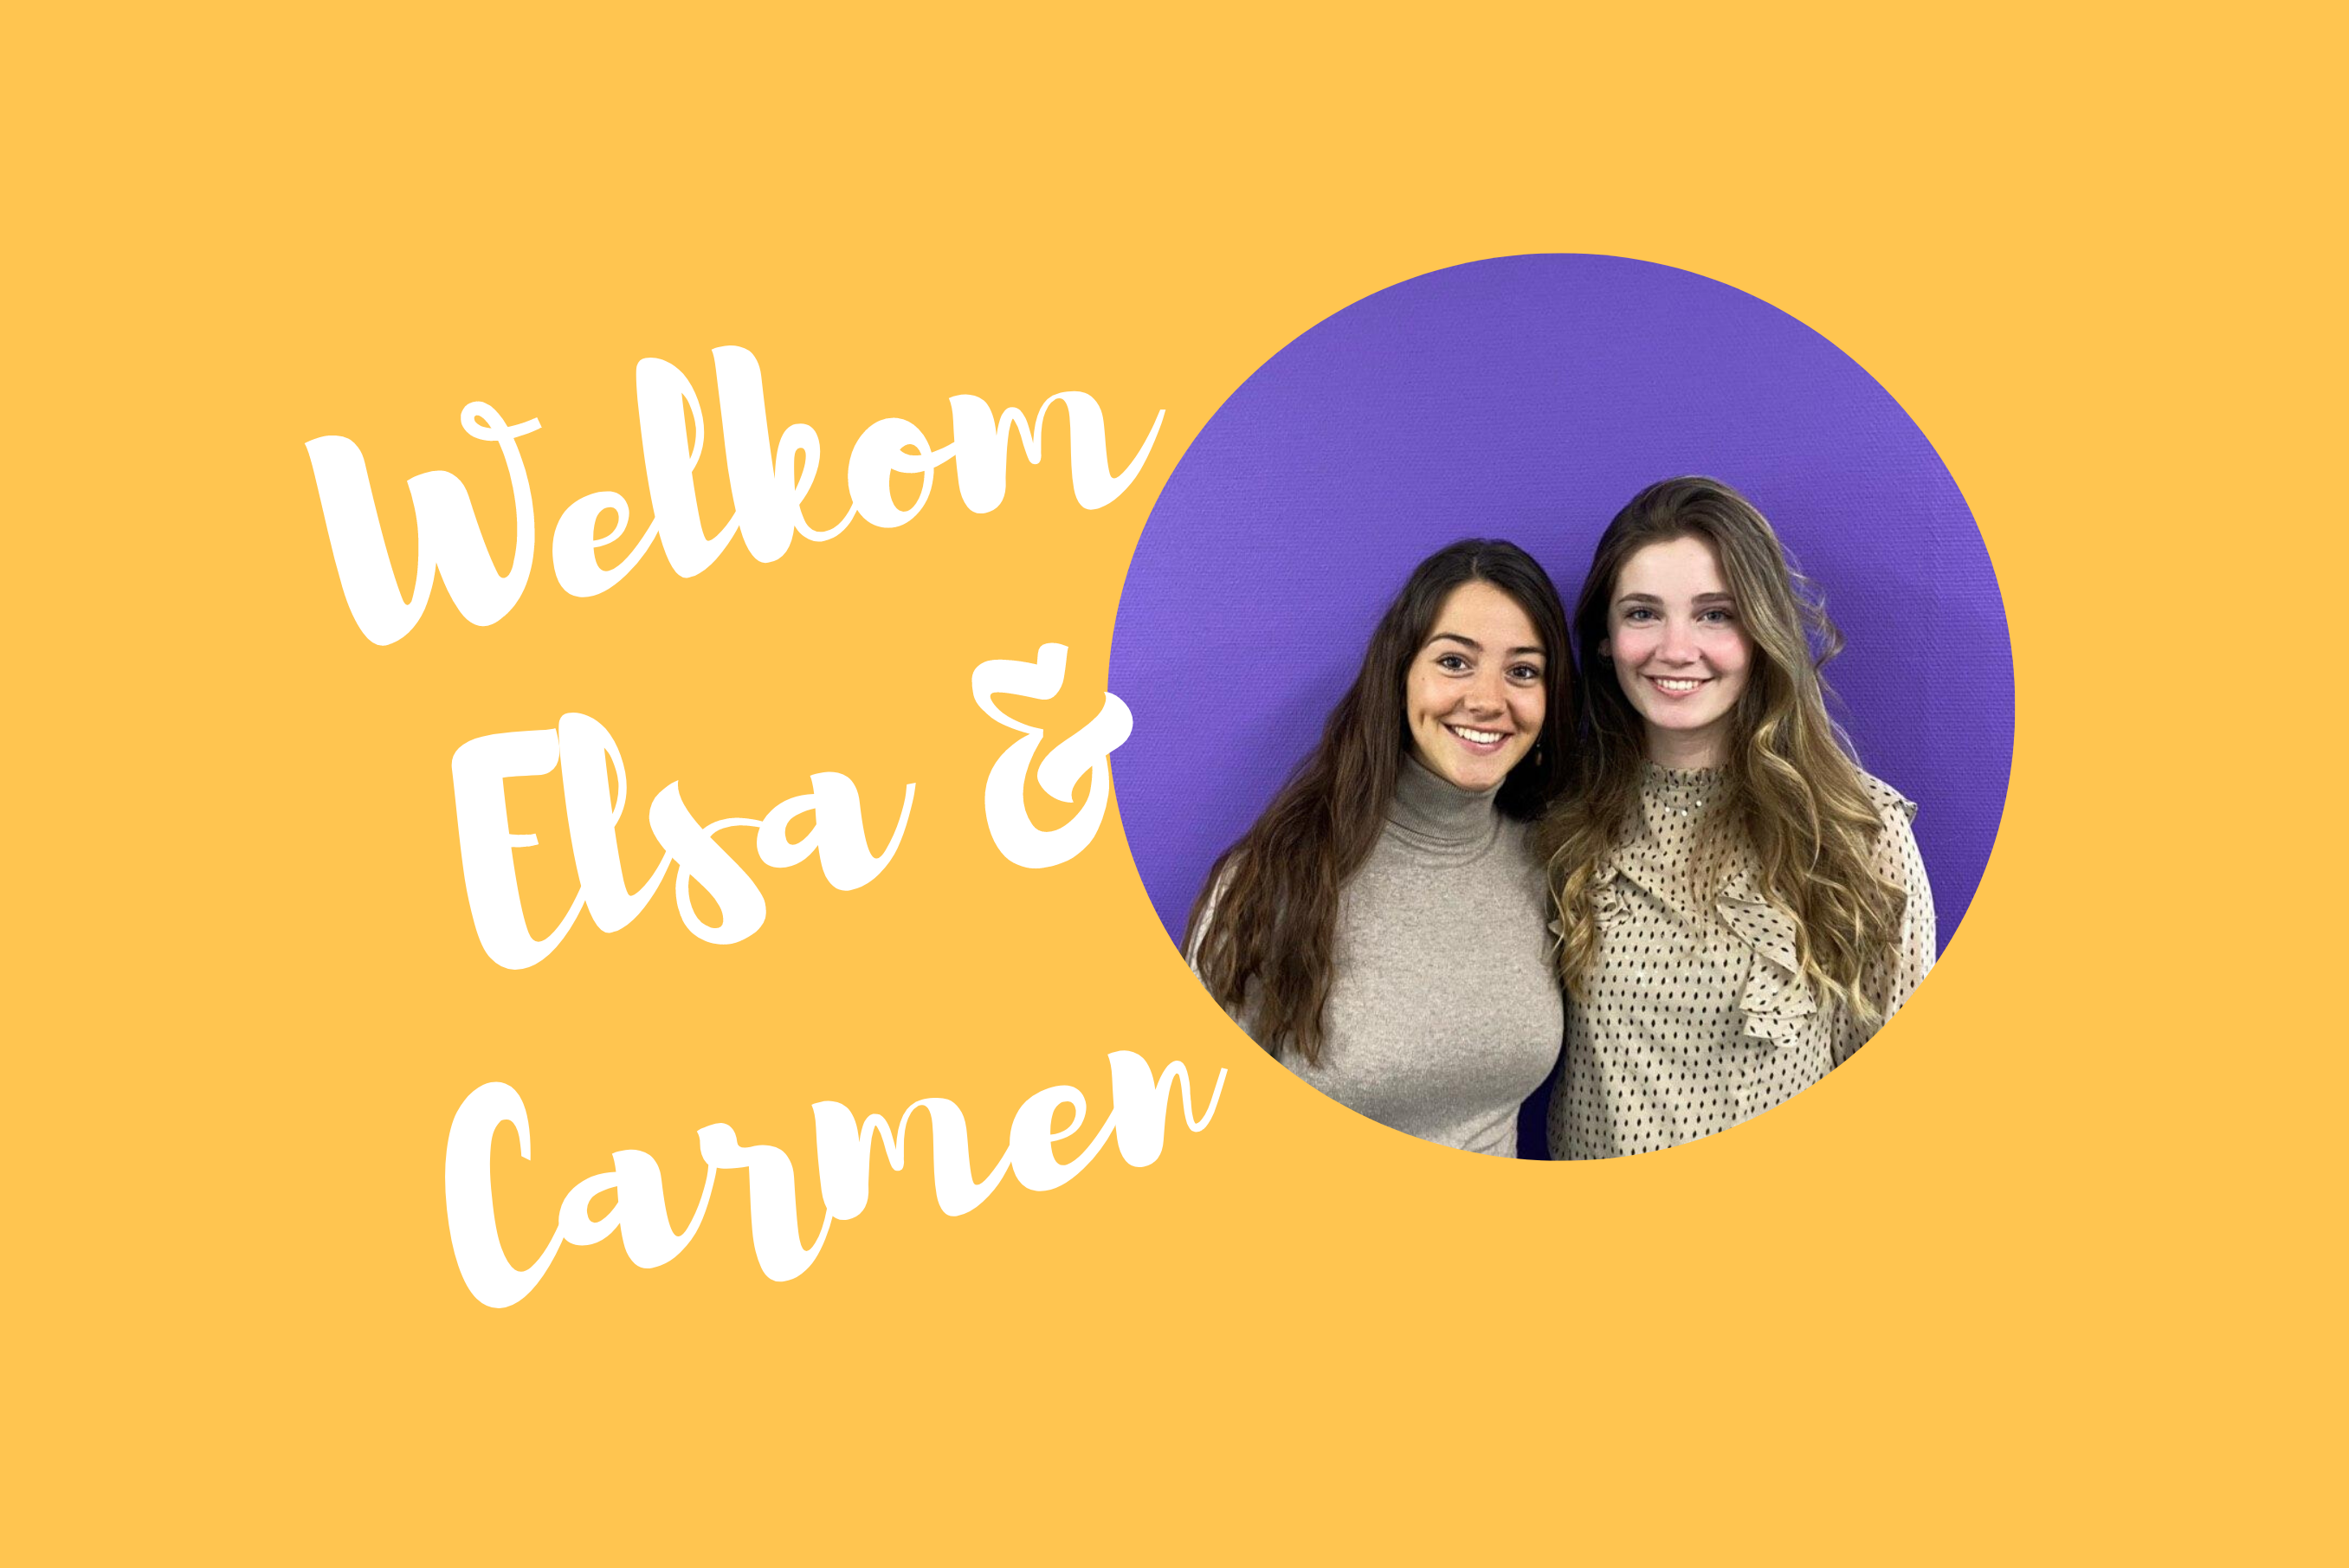 The Interns: Elsa & Carmen